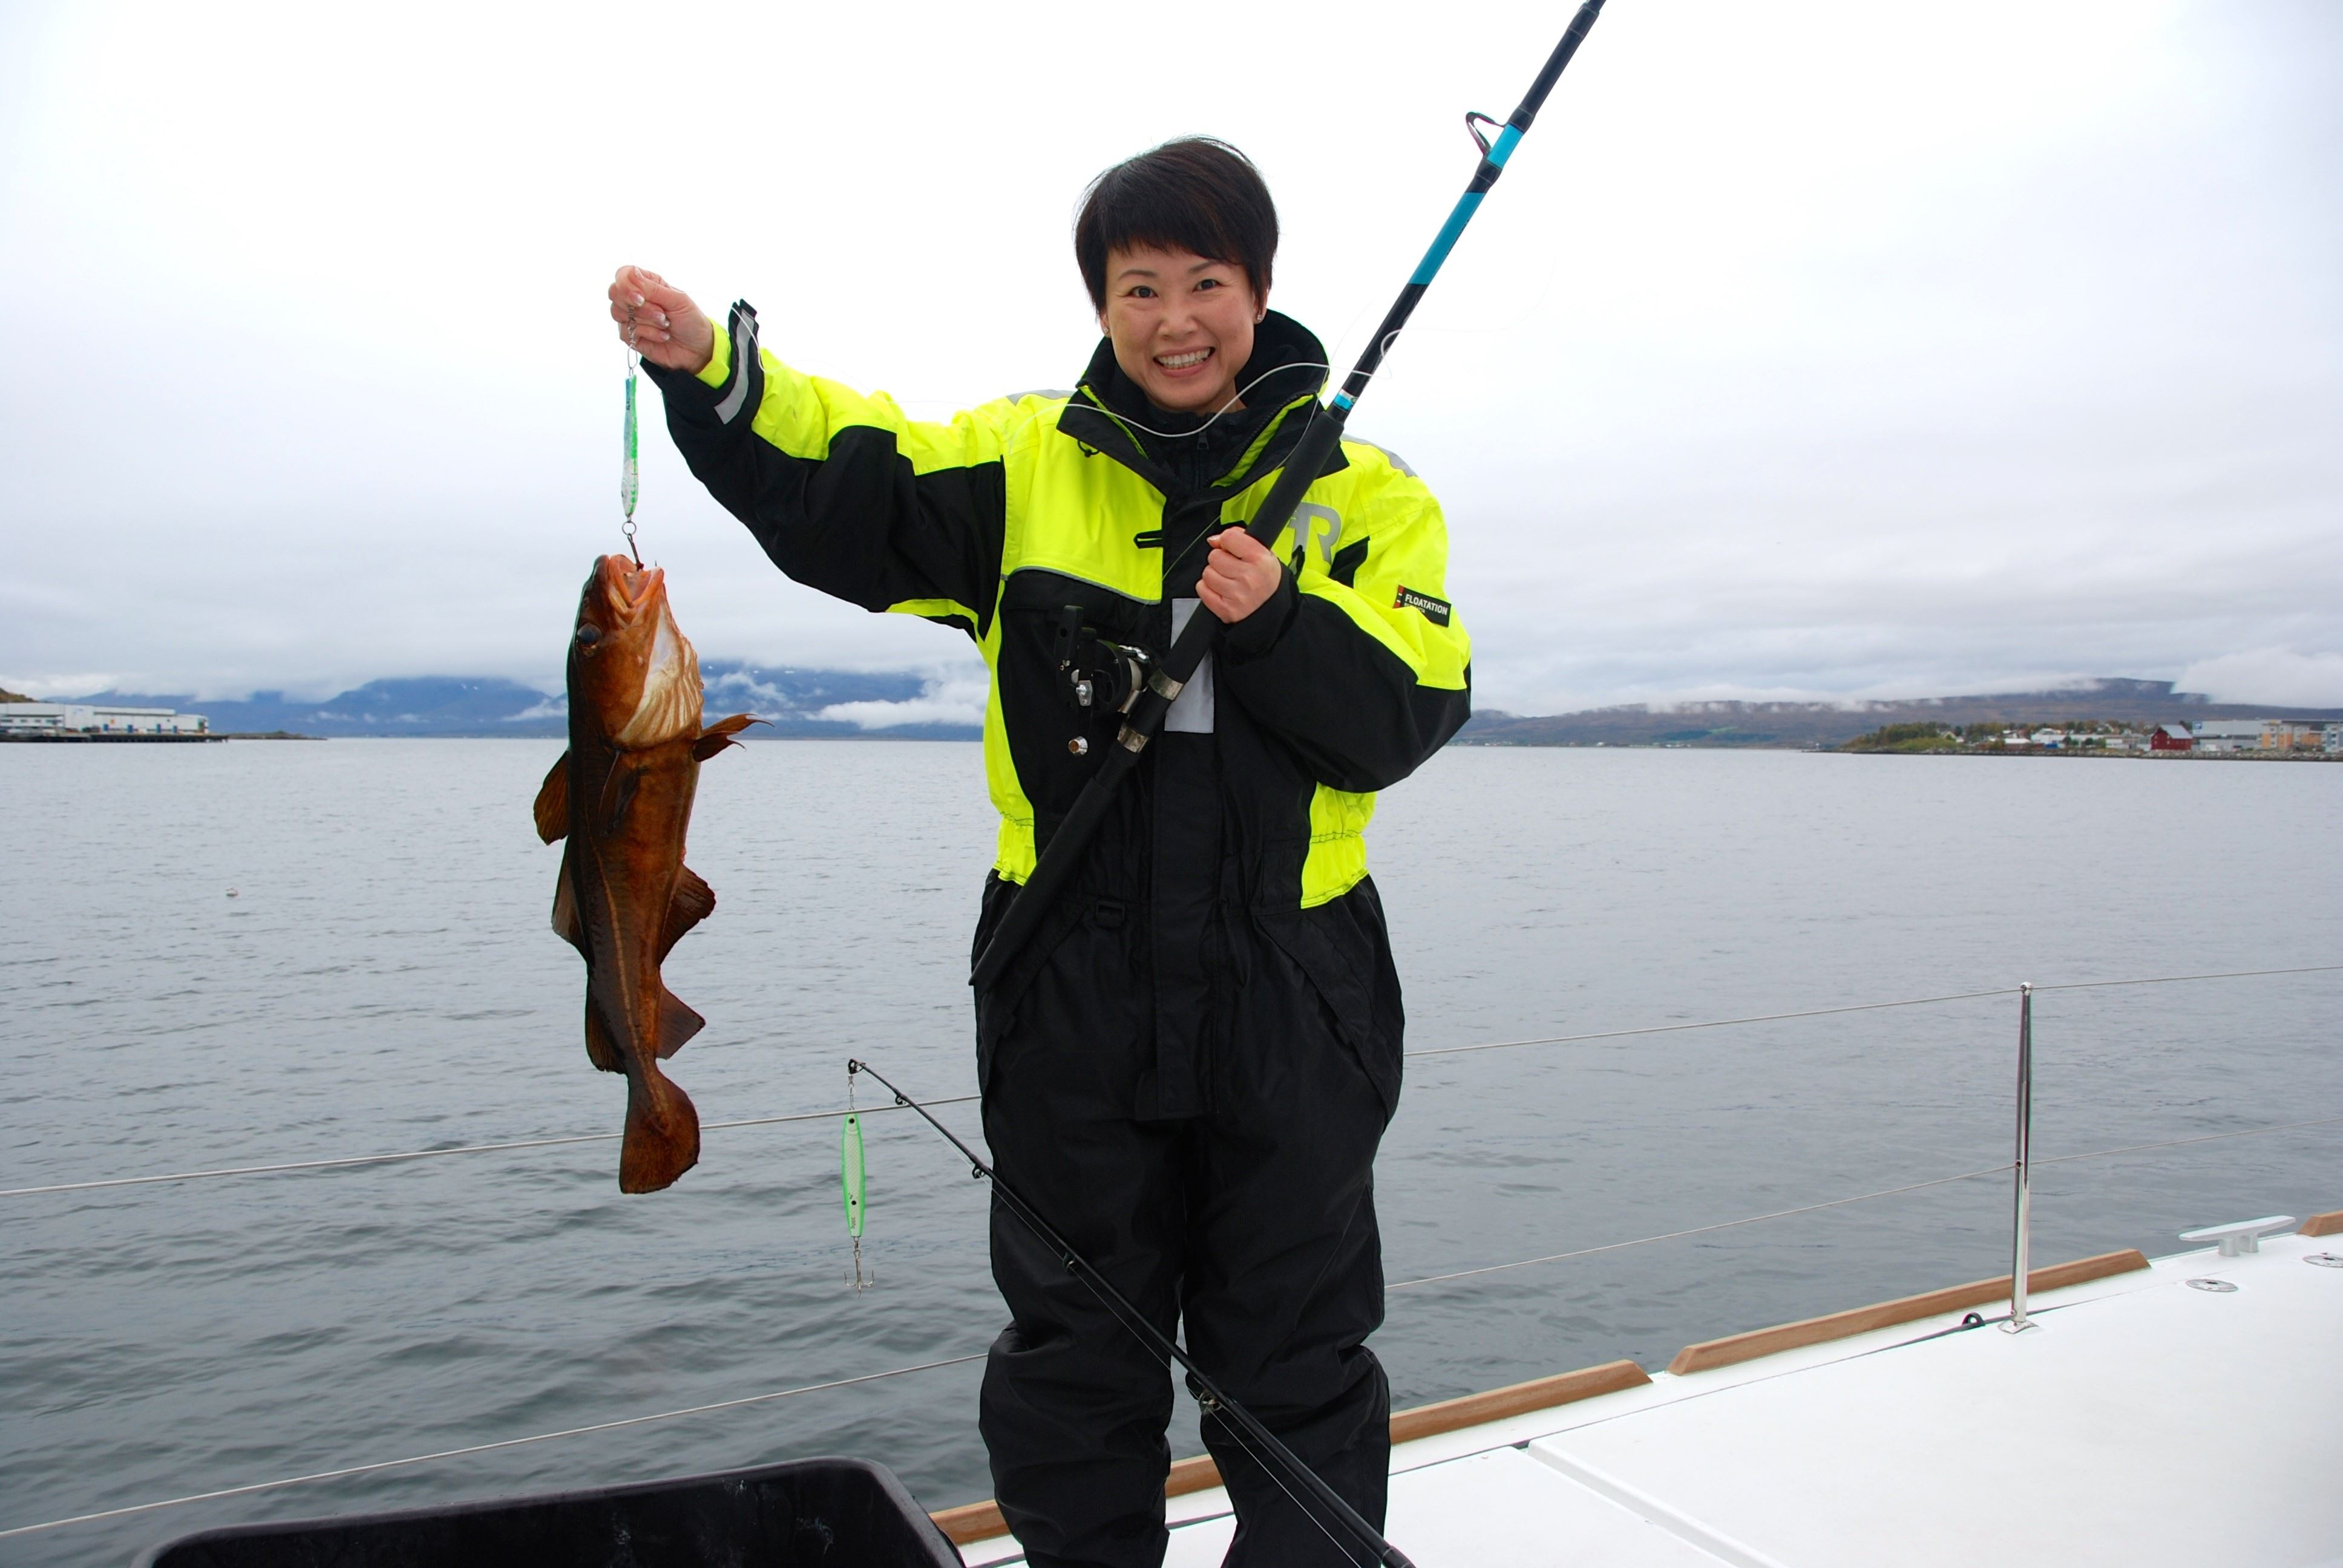 Fishing Trip with Self-Caught Fish for Lunch – Arctic Cruise in Norway